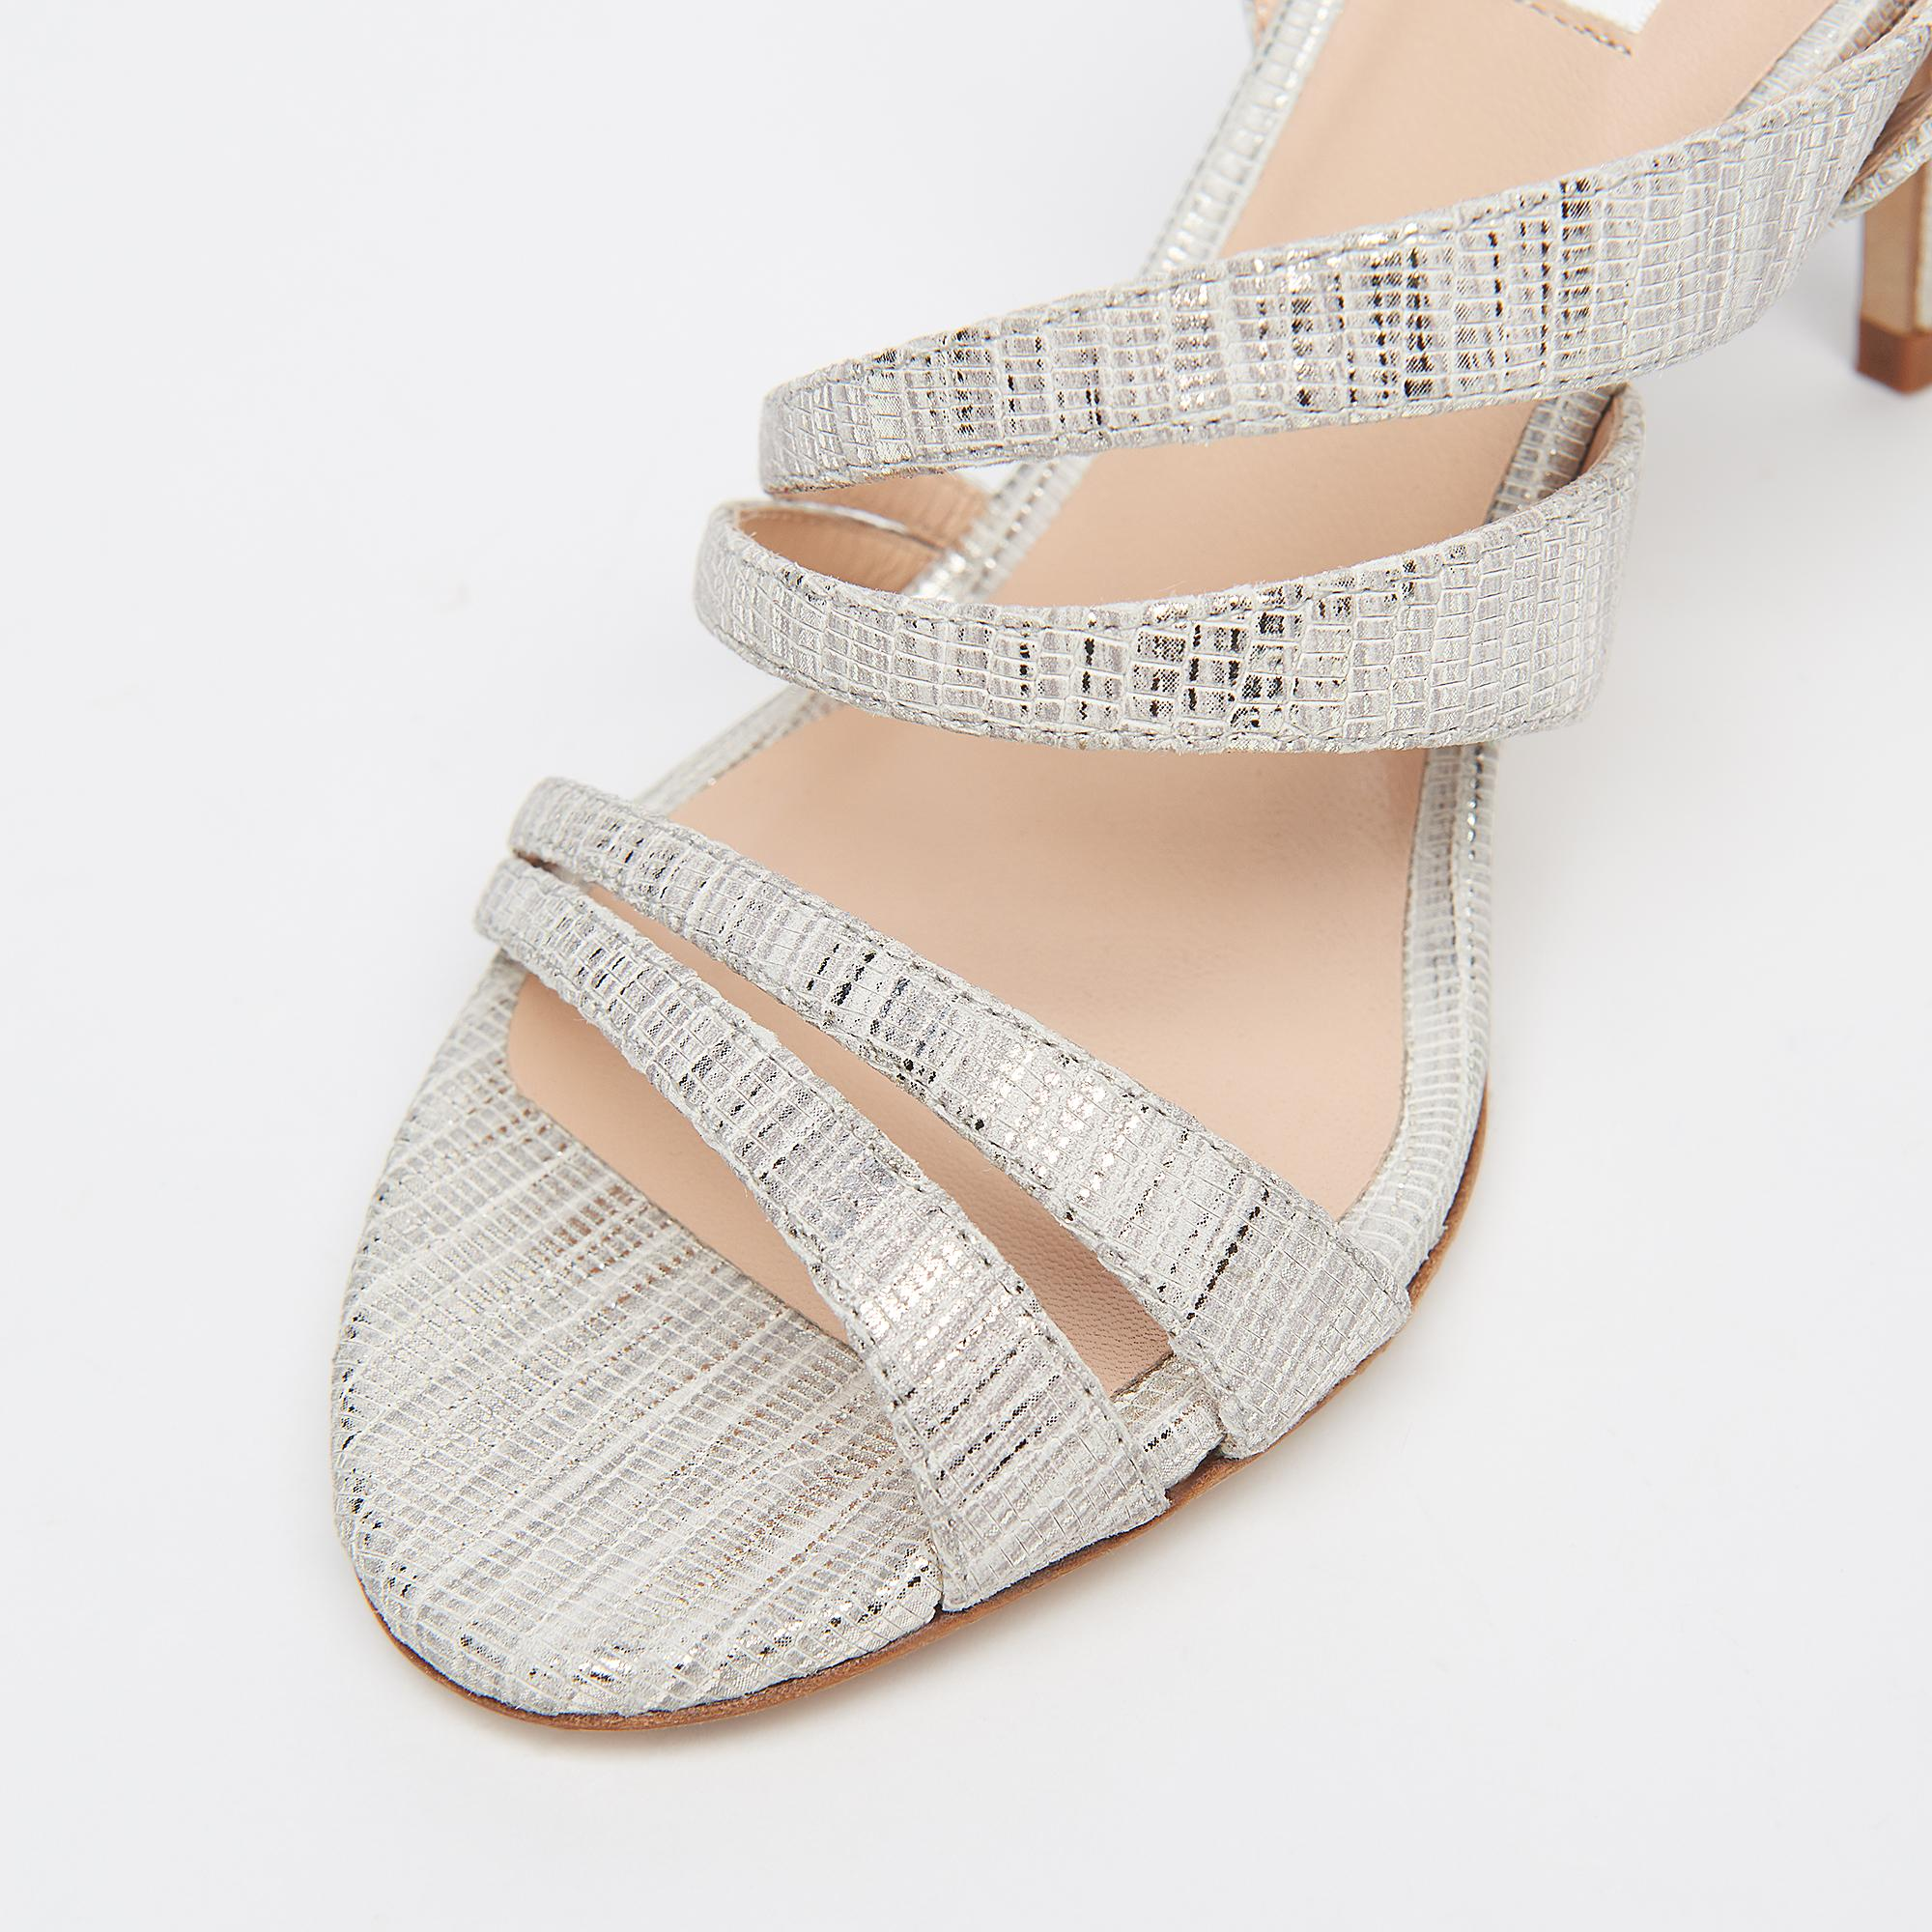 35de42e8f64 Valeria Silver Lizard Effect Leather Strappy Sandals